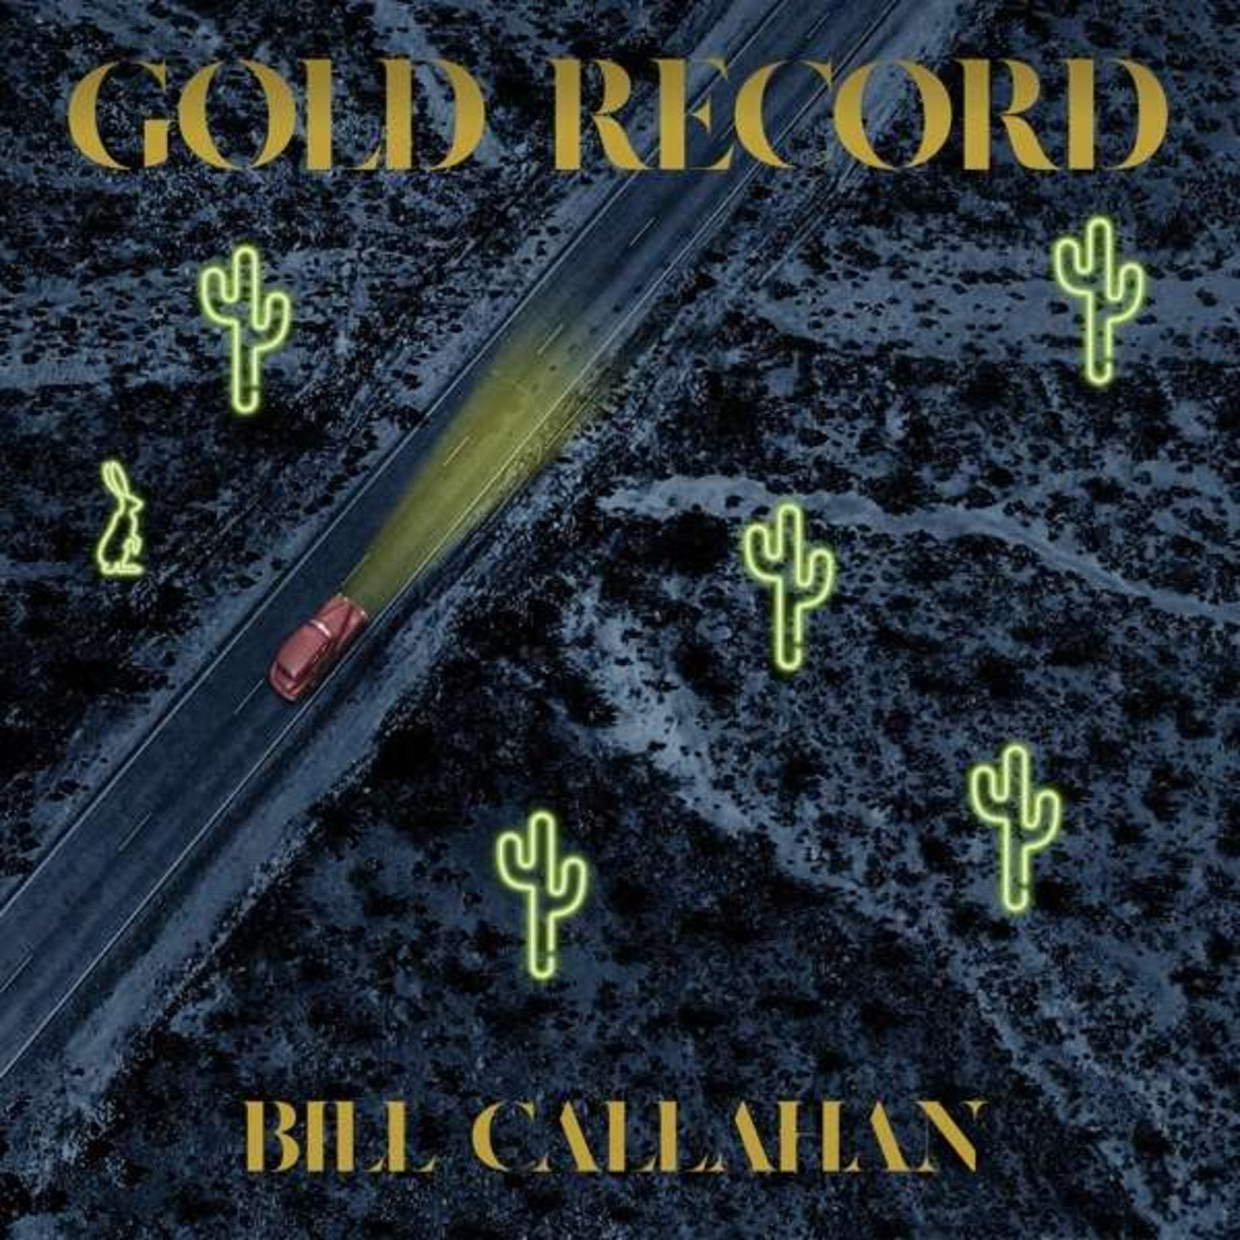 Gold Records - Bill Callahan Beeld rv